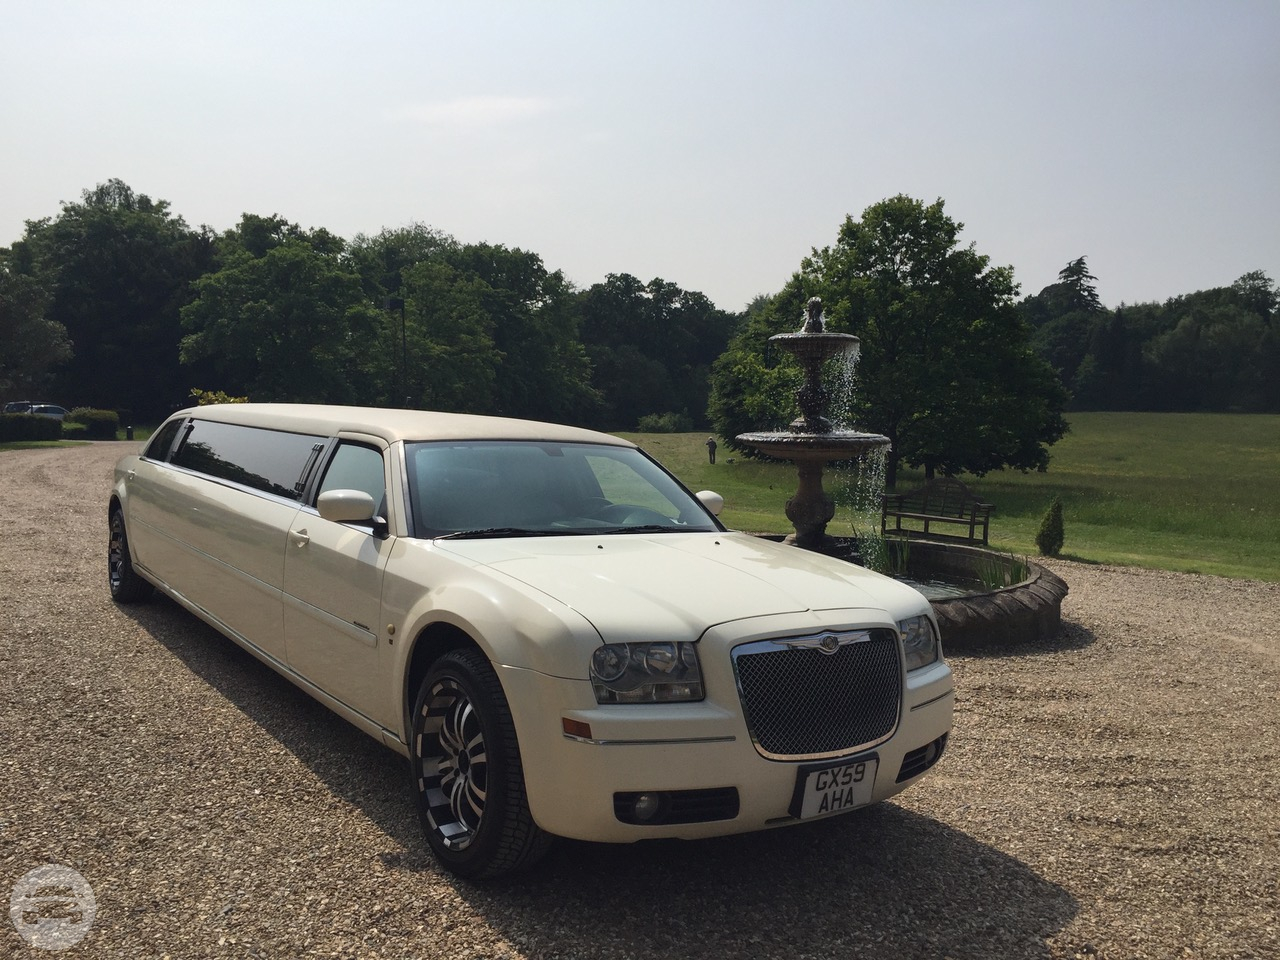 8 Seater Chrysler Limo Limo  / Surrey Heath District, UK   / Hourly £0.00